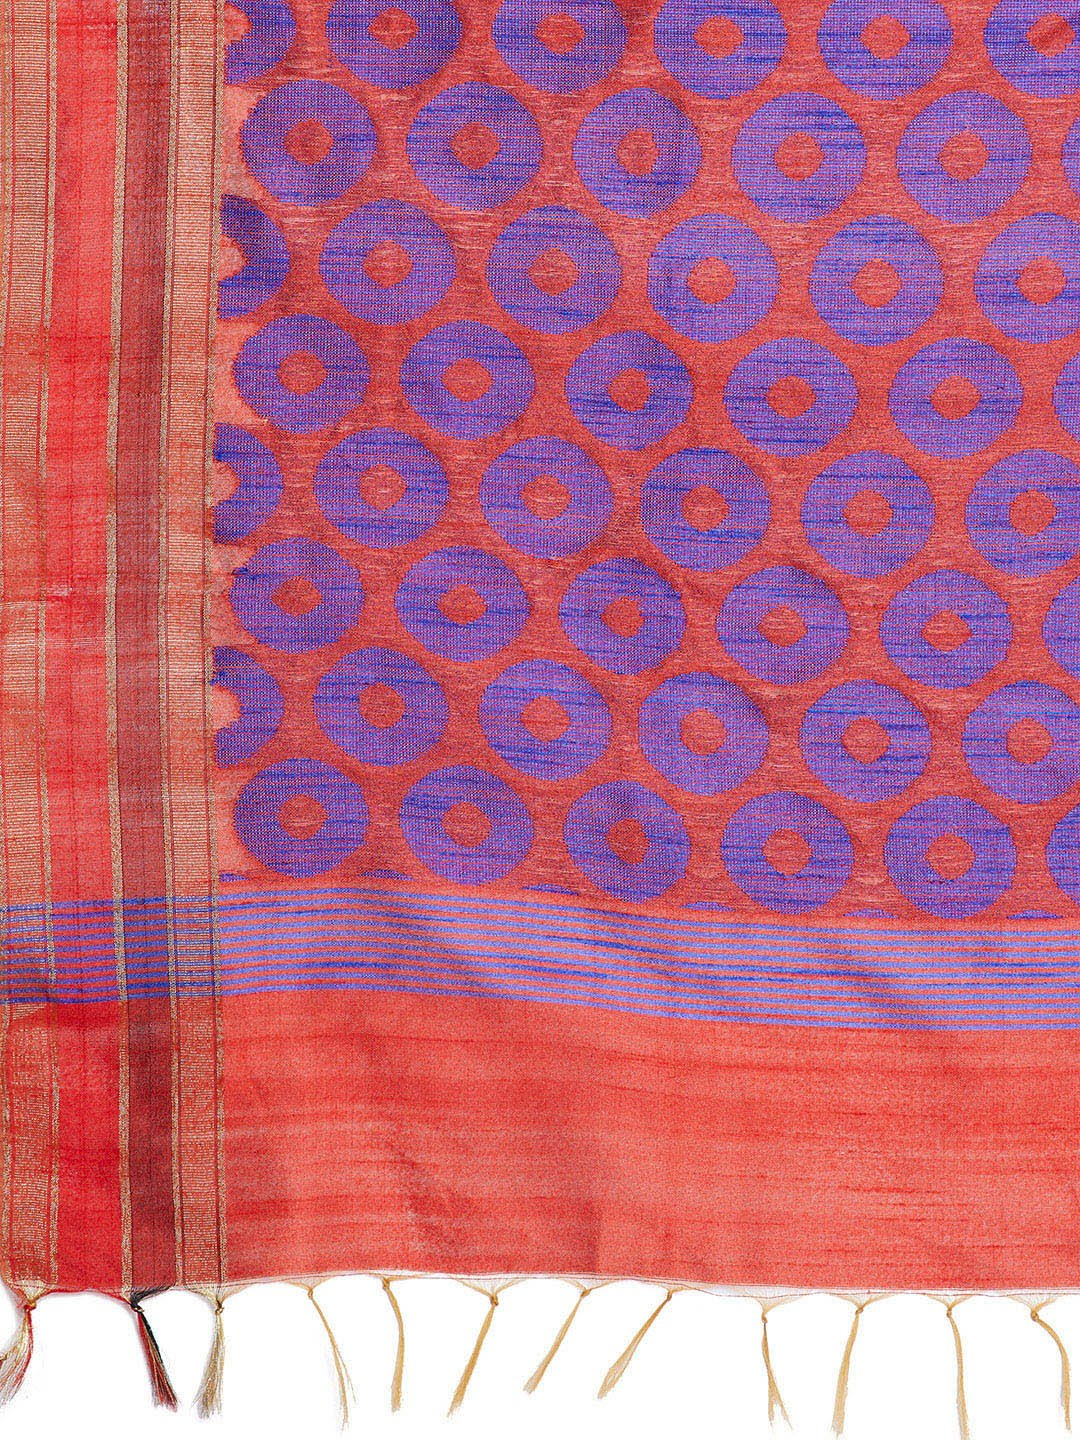 Red and Blue Tussar Woven Design Handloom Saree-Saree-Kalakari India-PRTUSA0010-Ahimsa Silk, Chattisgarh Kosa, Cruelty Free, Geographical Indication, Hand Woven, Sarees, Silk, Sustainable Fabrics, Traditional Weave, Tussar-[Linen,Ethnic,wear,Fashionista,Handloom,Handicraft,Indigo,blockprint,block,print,Cotton,Chanderi,Blue, latest,classy,party,bollywood,trendy,summer,style,traditional,formal,elegant,unique,style,hand,block,print, dabu,booti,gift,present,glamorous,affordable,collectible,Sari,Sare